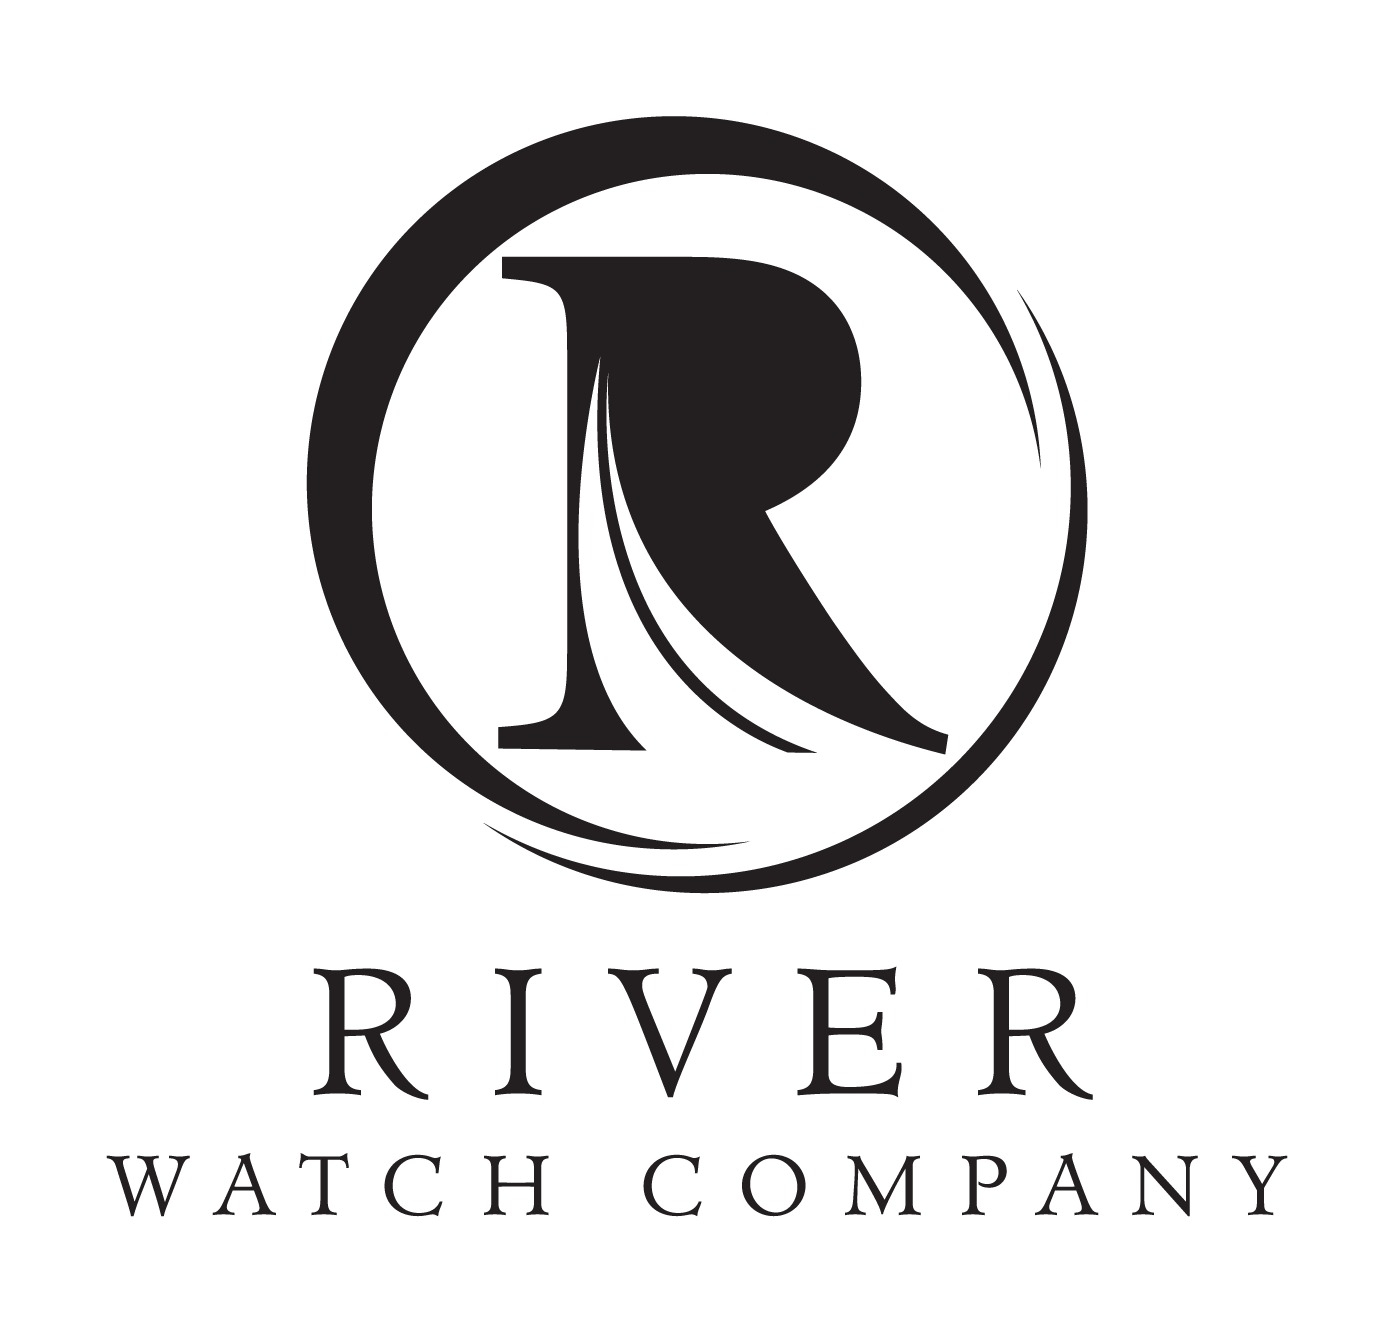 River Watch Company Coupons & Promo codes